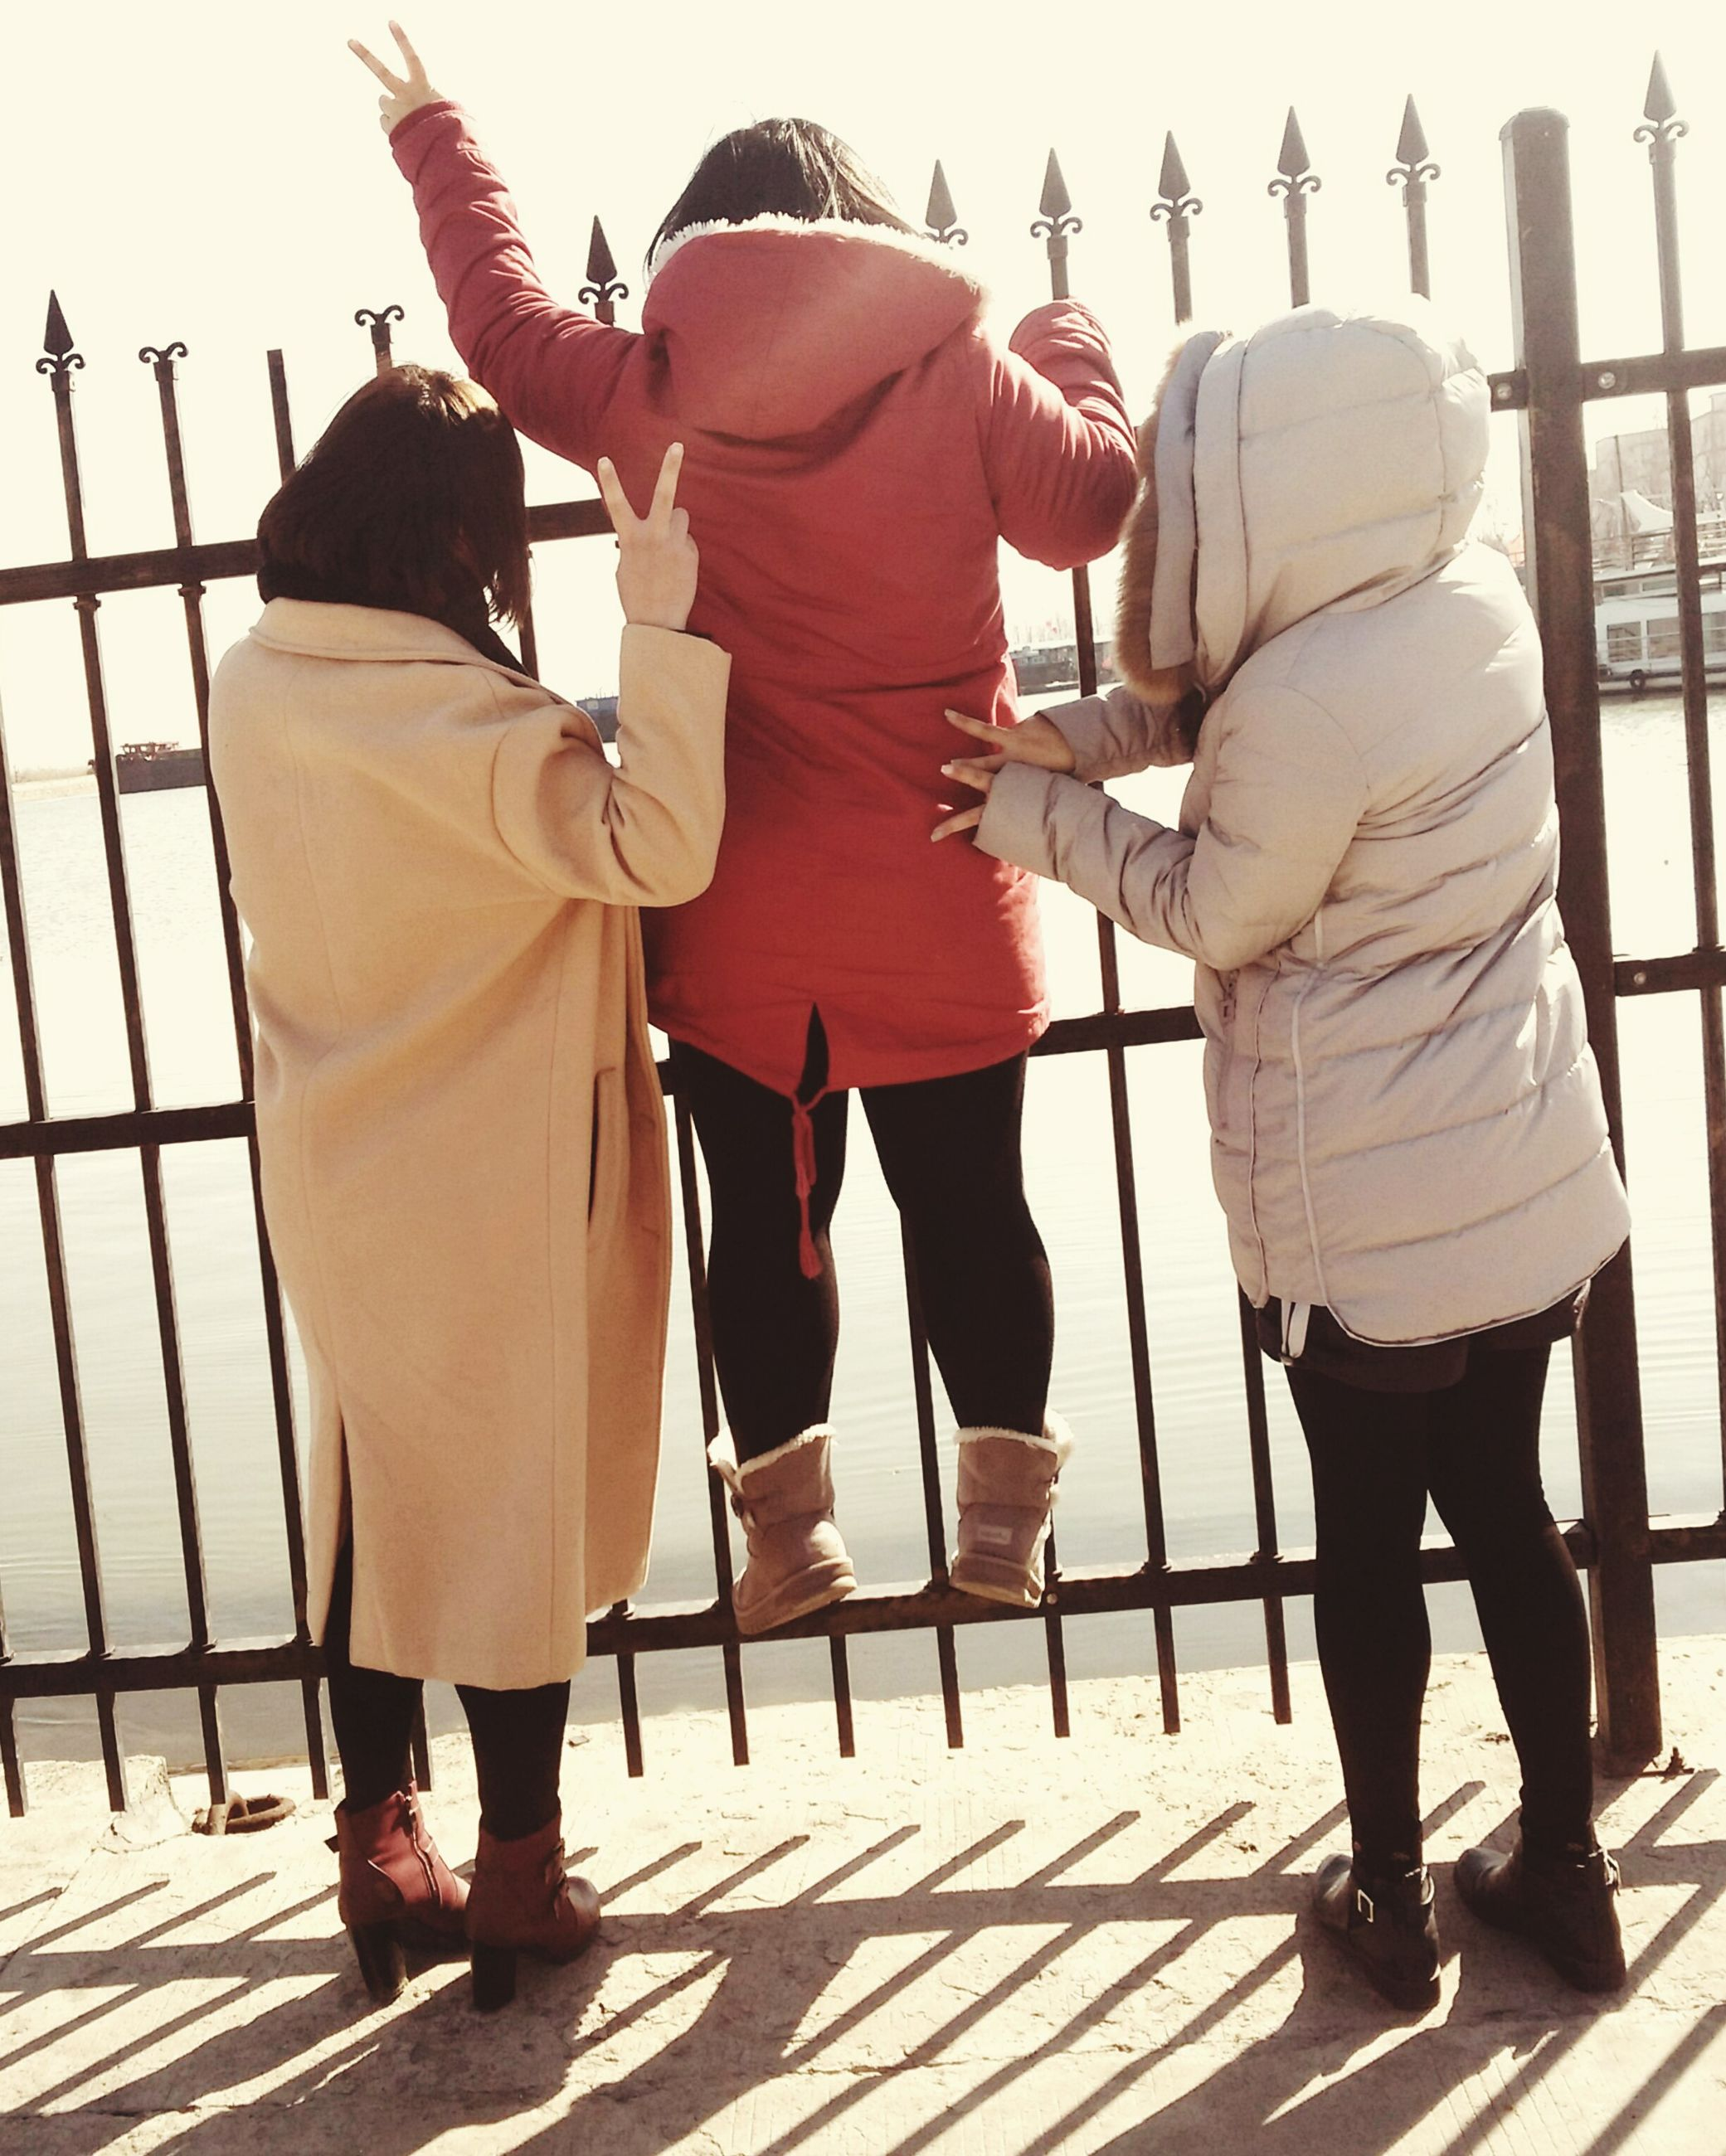 lifestyles, men, person, togetherness, rear view, leisure activity, casual clothing, full length, walking, standing, large group of people, bonding, medium group of people, side by side, love, in a row, railing, outdoors